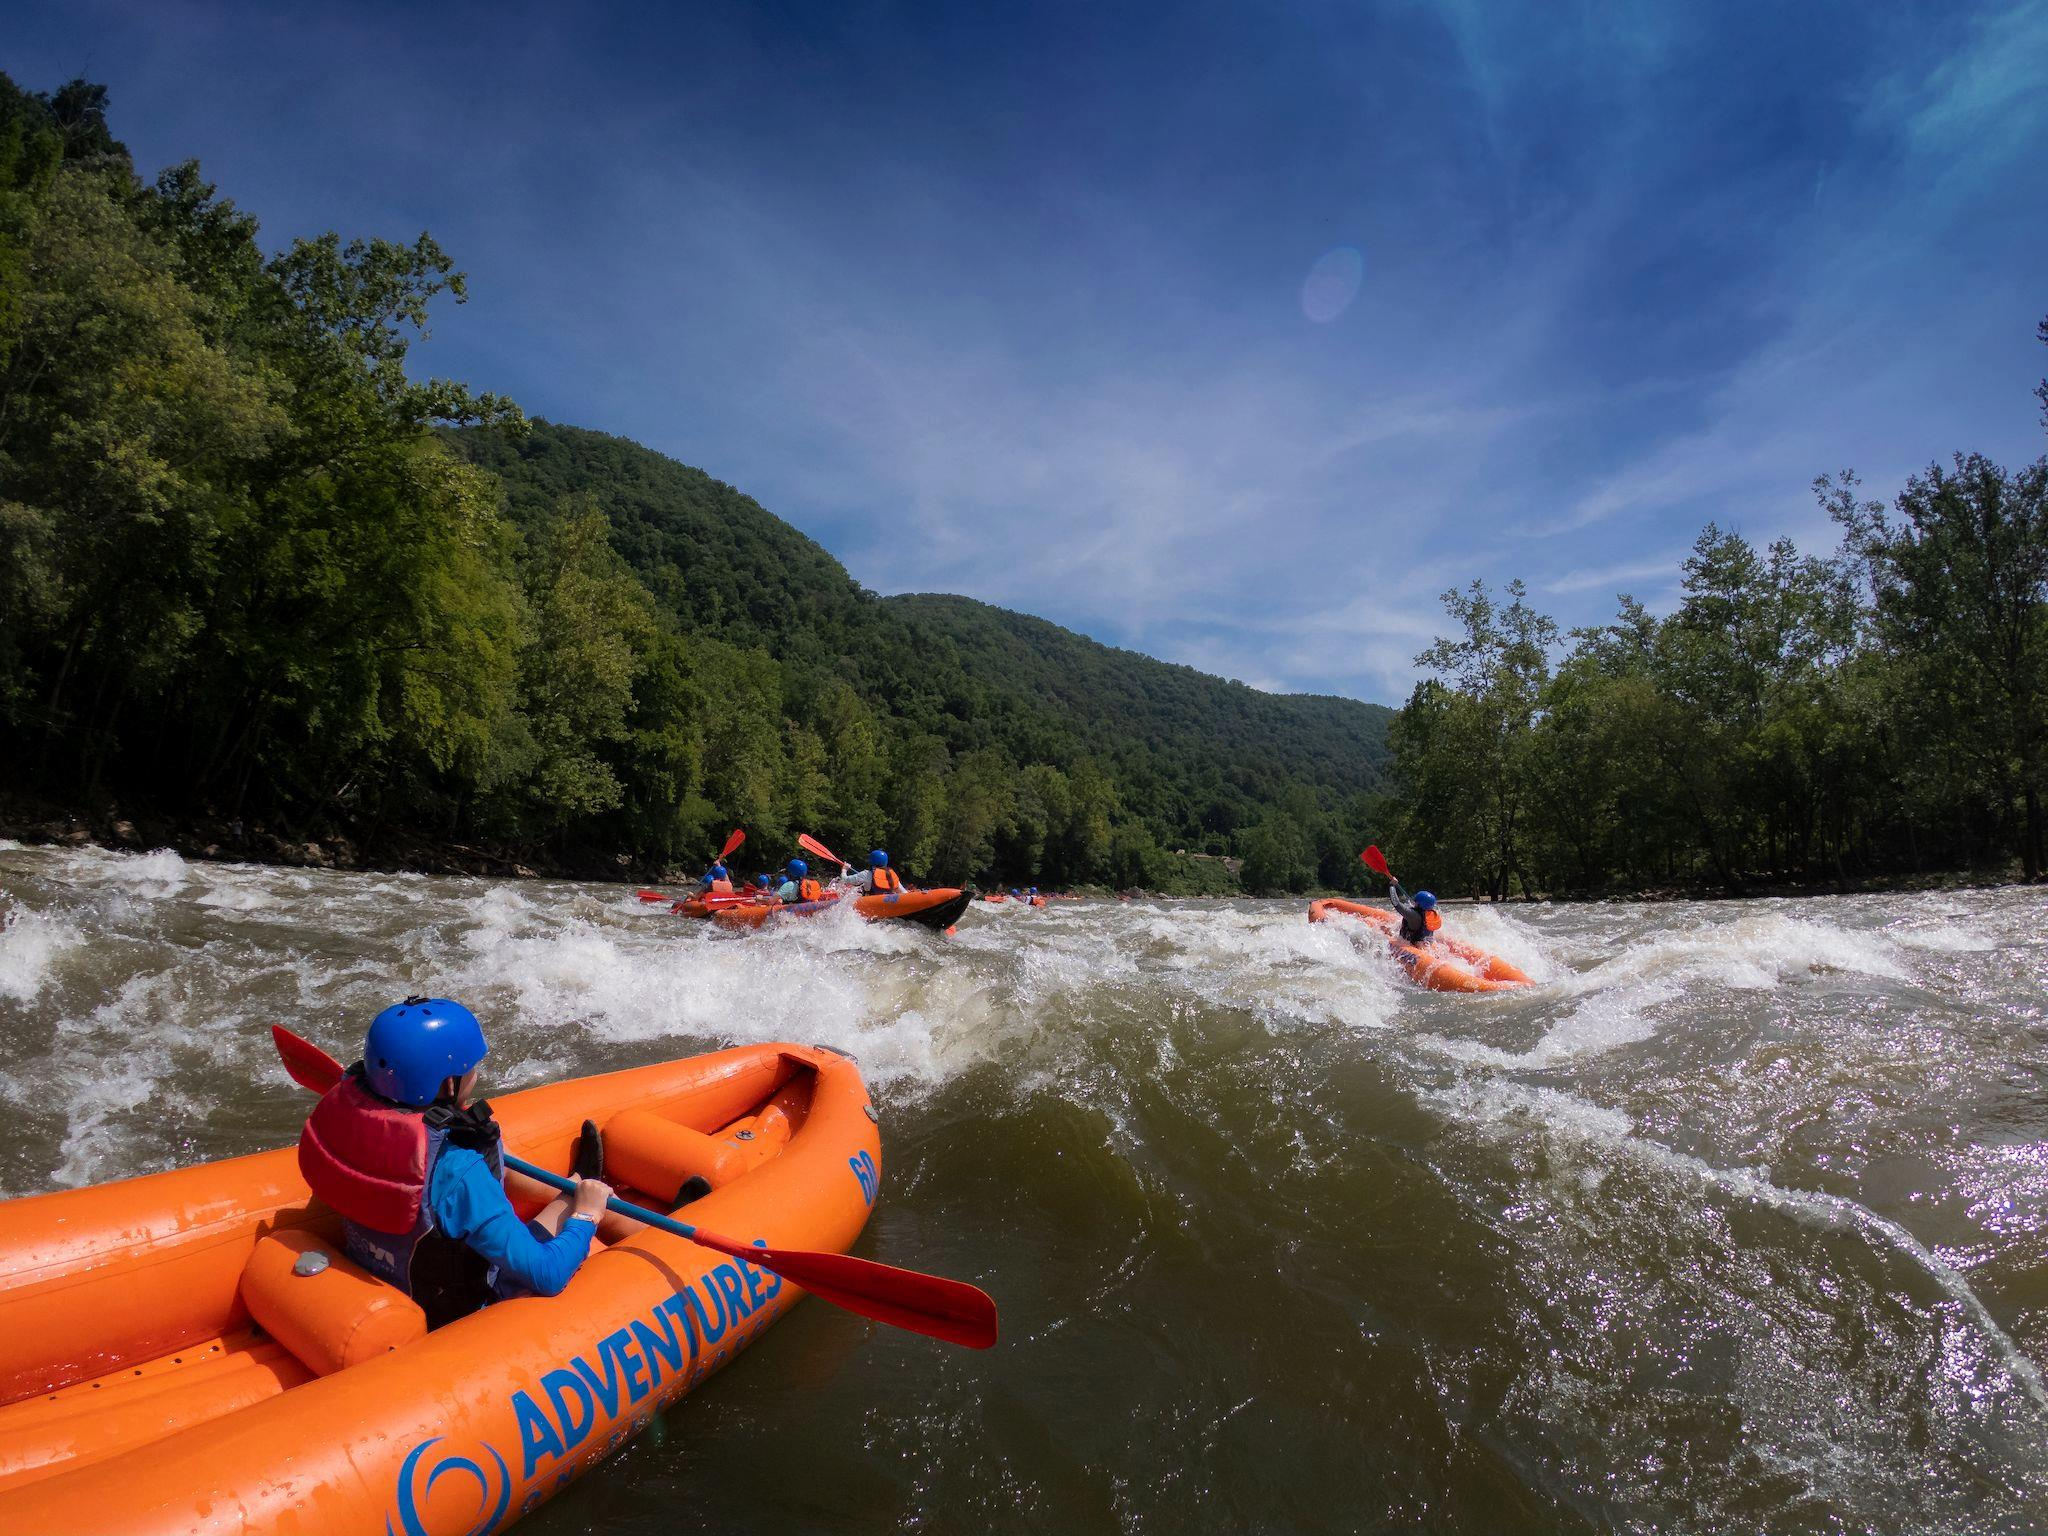 Rafting in New River Gorge National Park